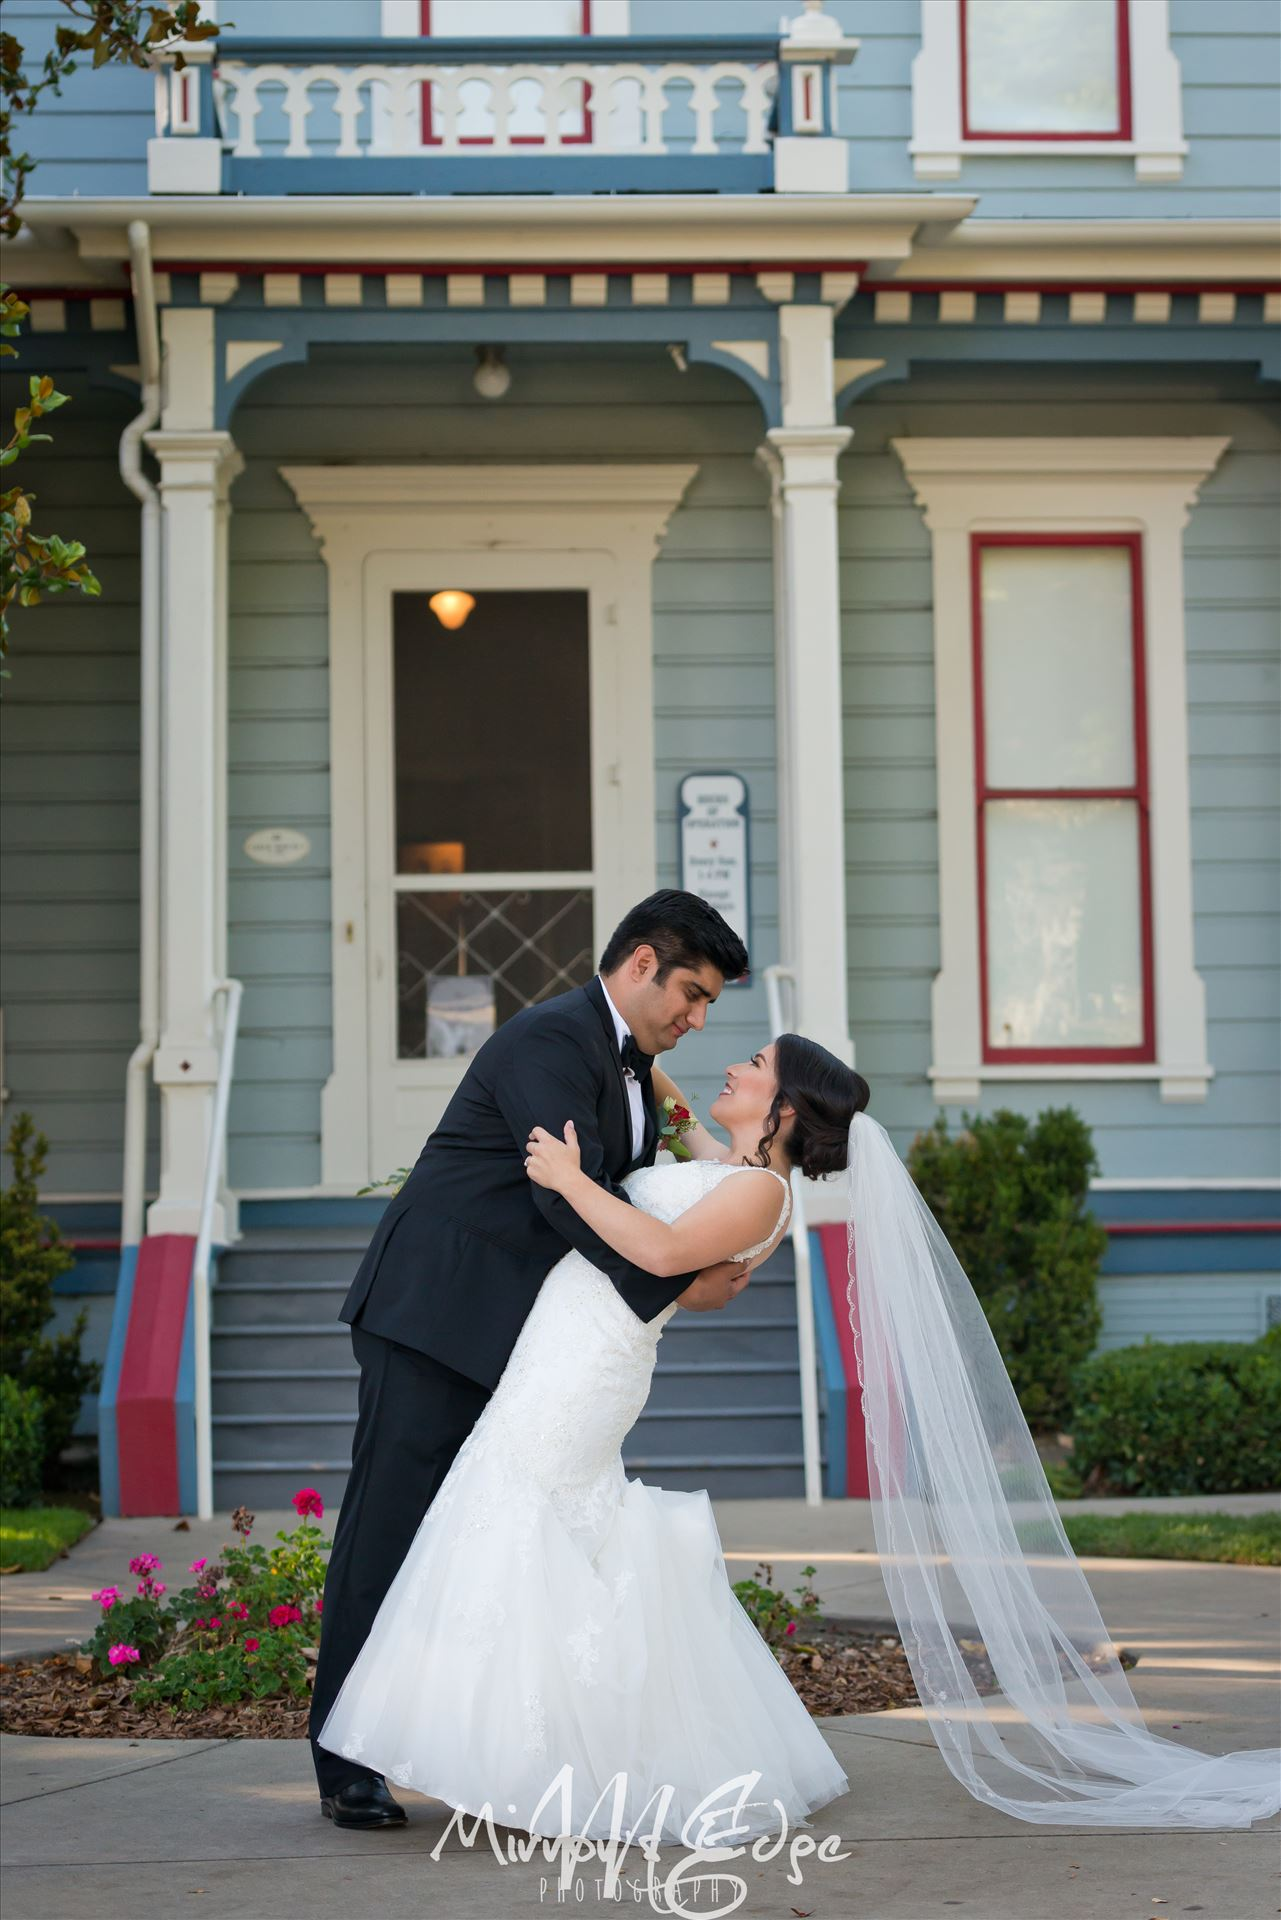 Port-9615.jpg - Modern and chic Downtown San Luis Obispo Wedding at the Historic Jack House and Gardens, wedding photography with love by Sarah Williams